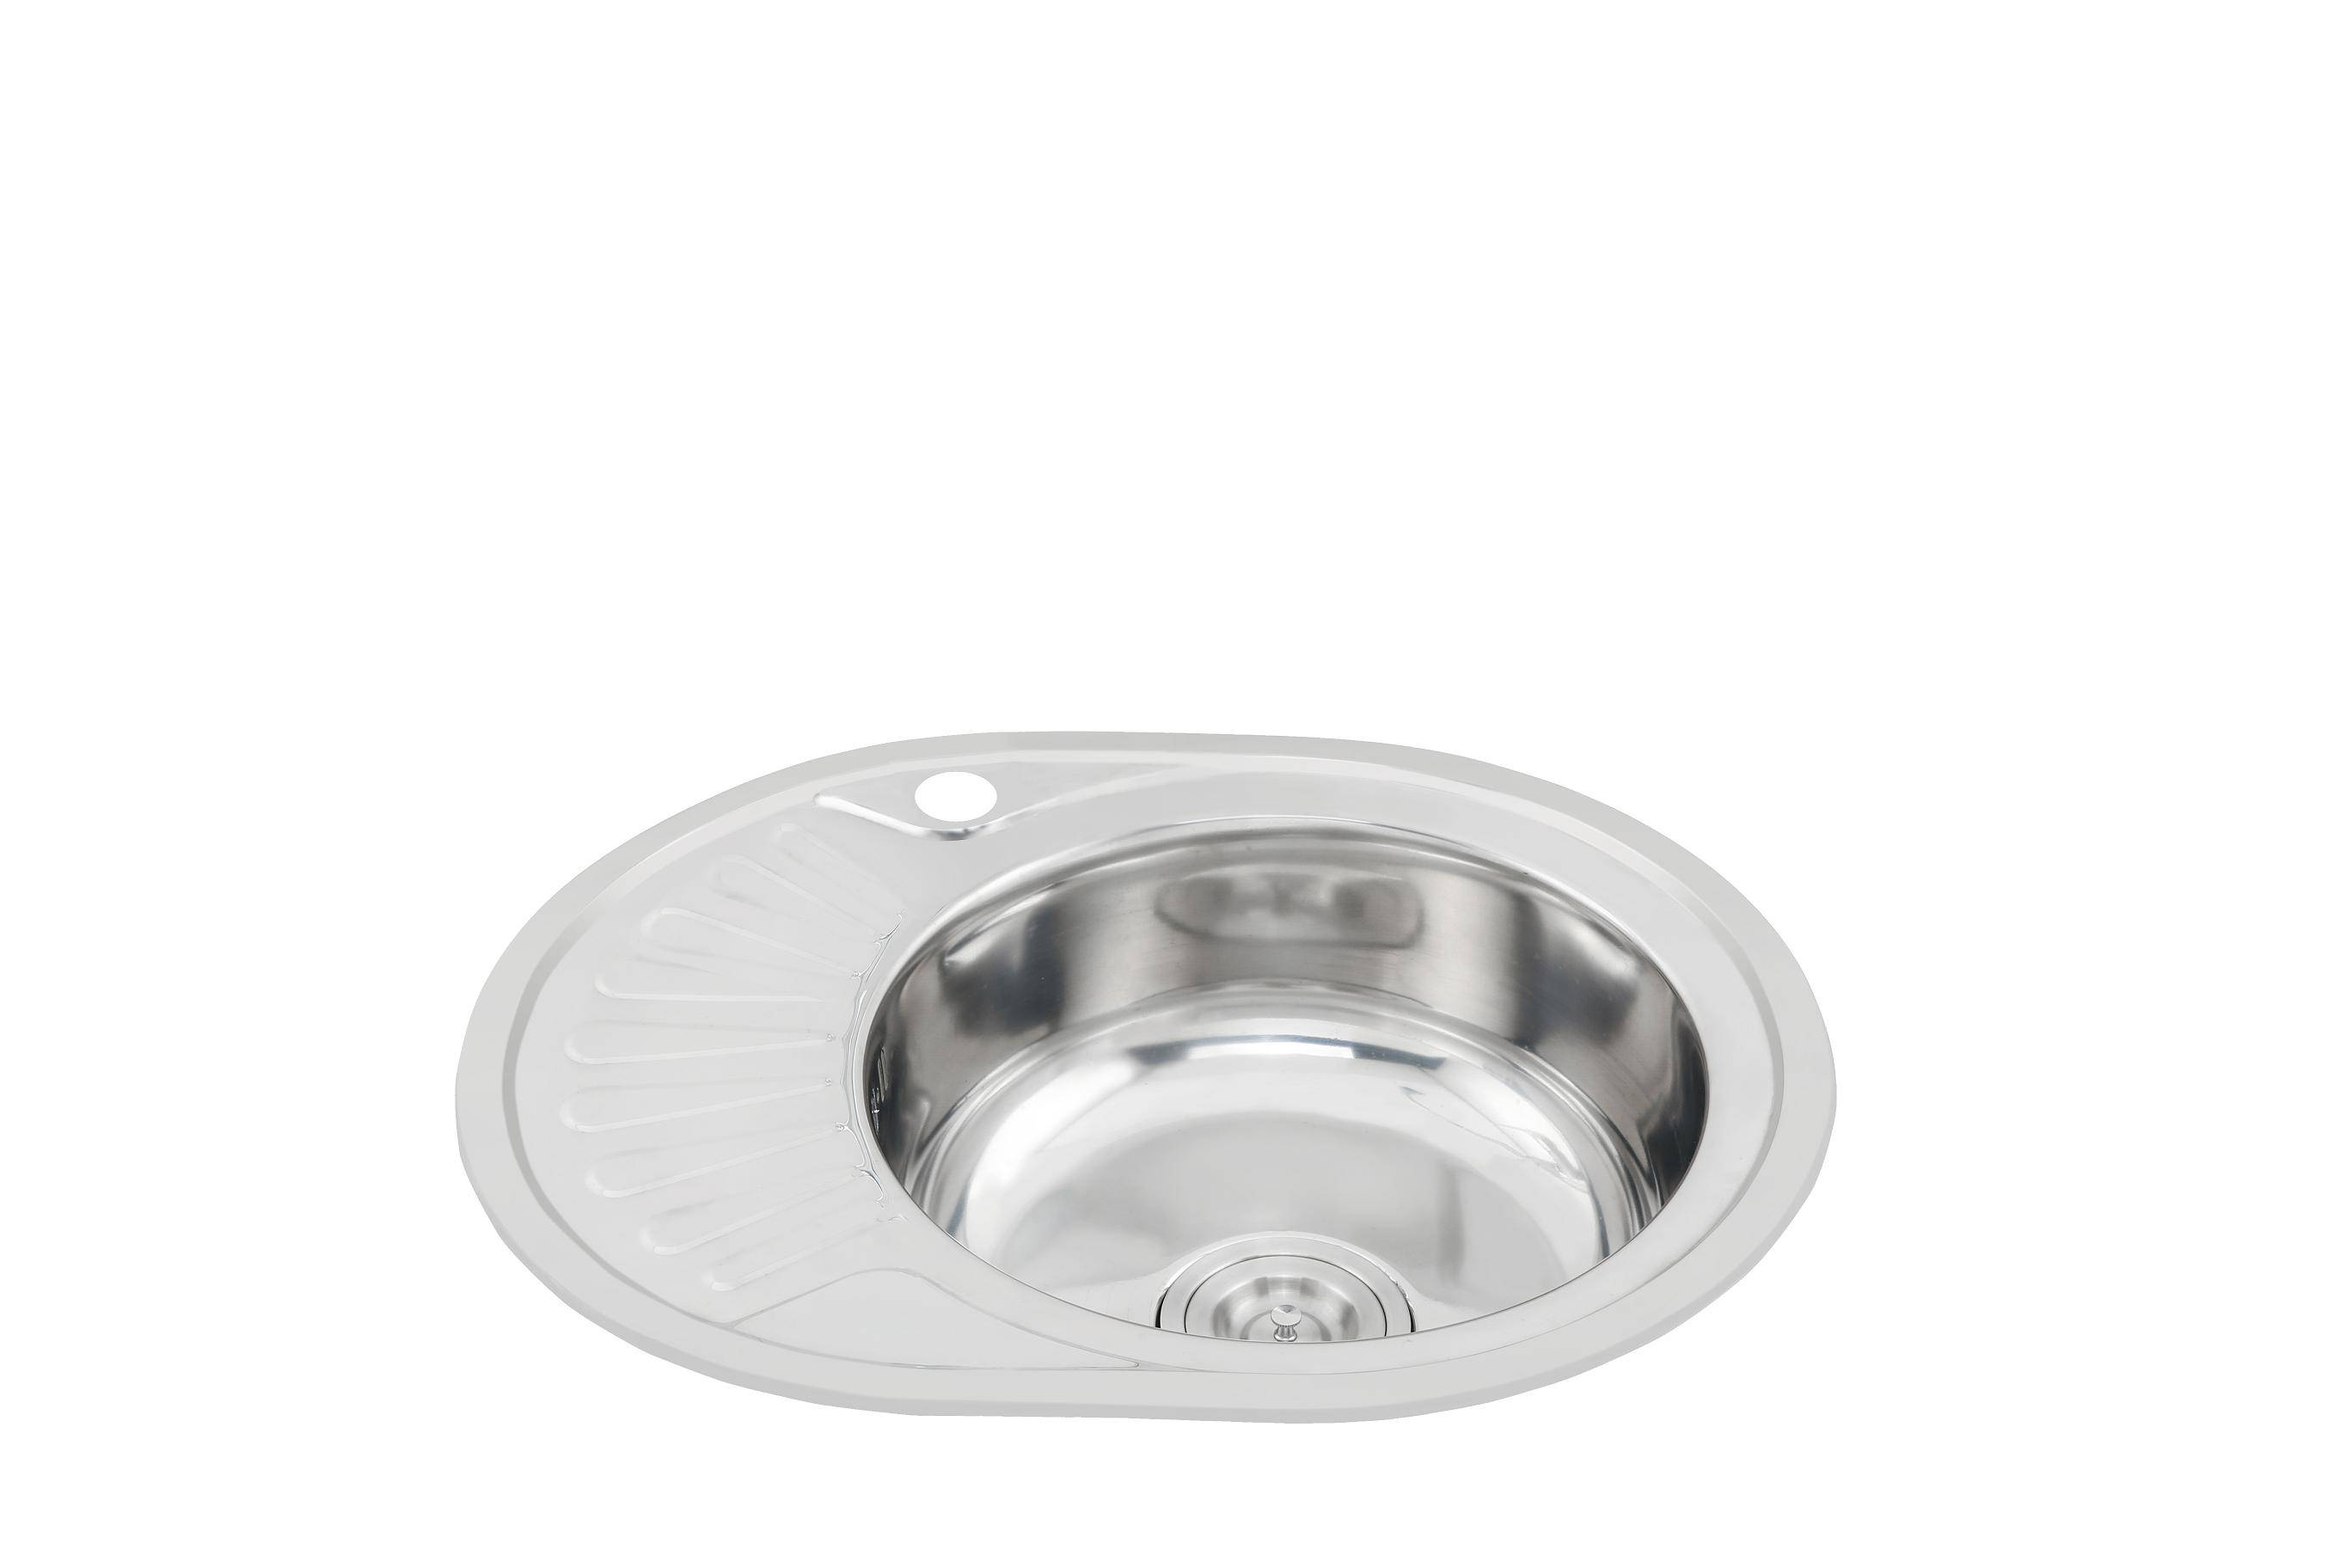 Modern one piece stainless steel sink without faucet WY-5745